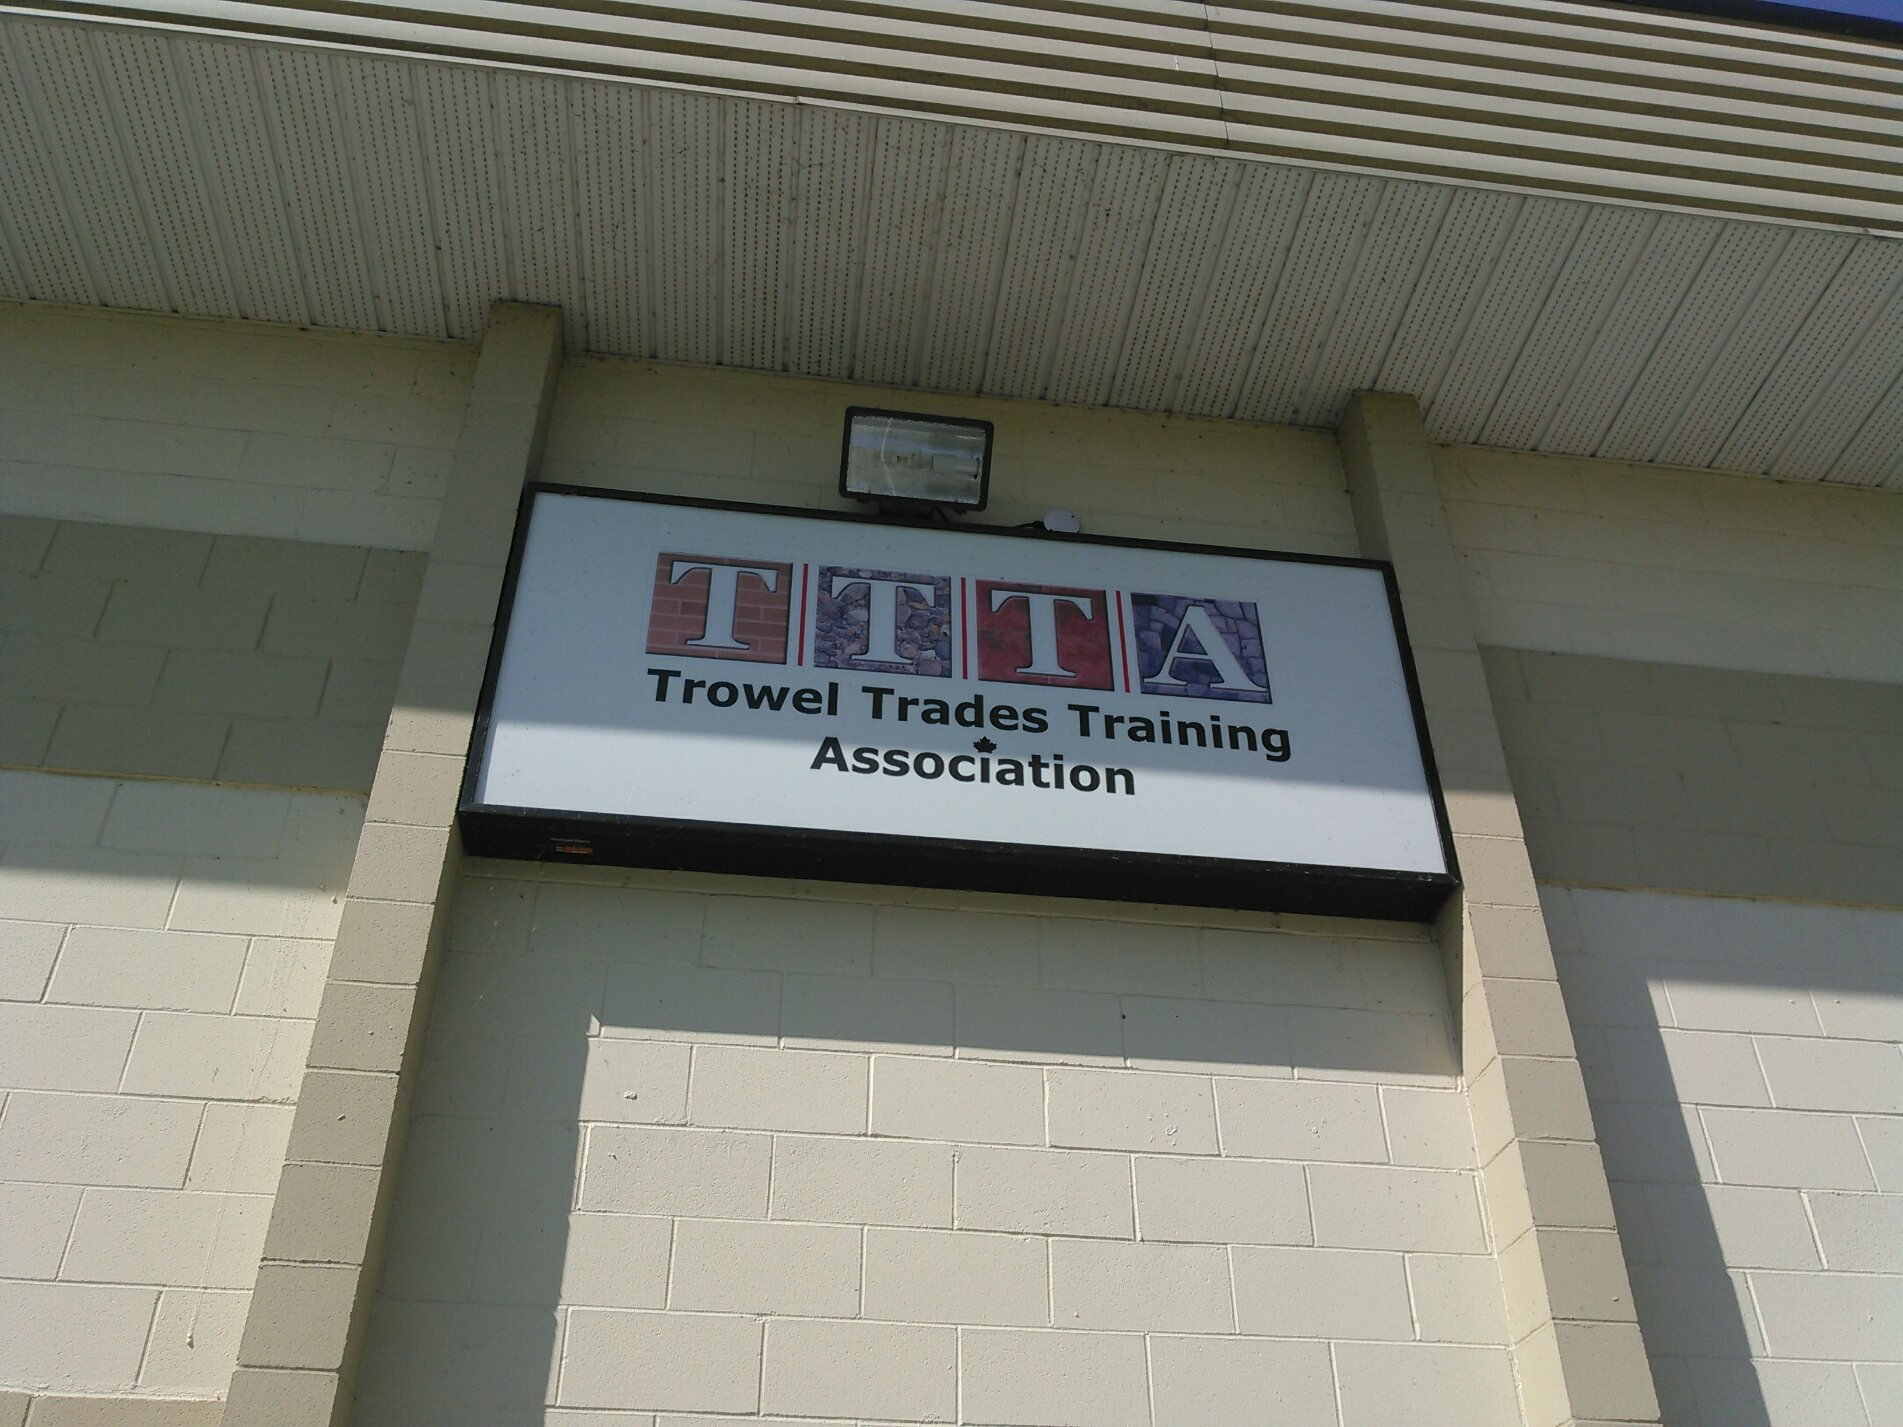 Trowel Trades Training Association